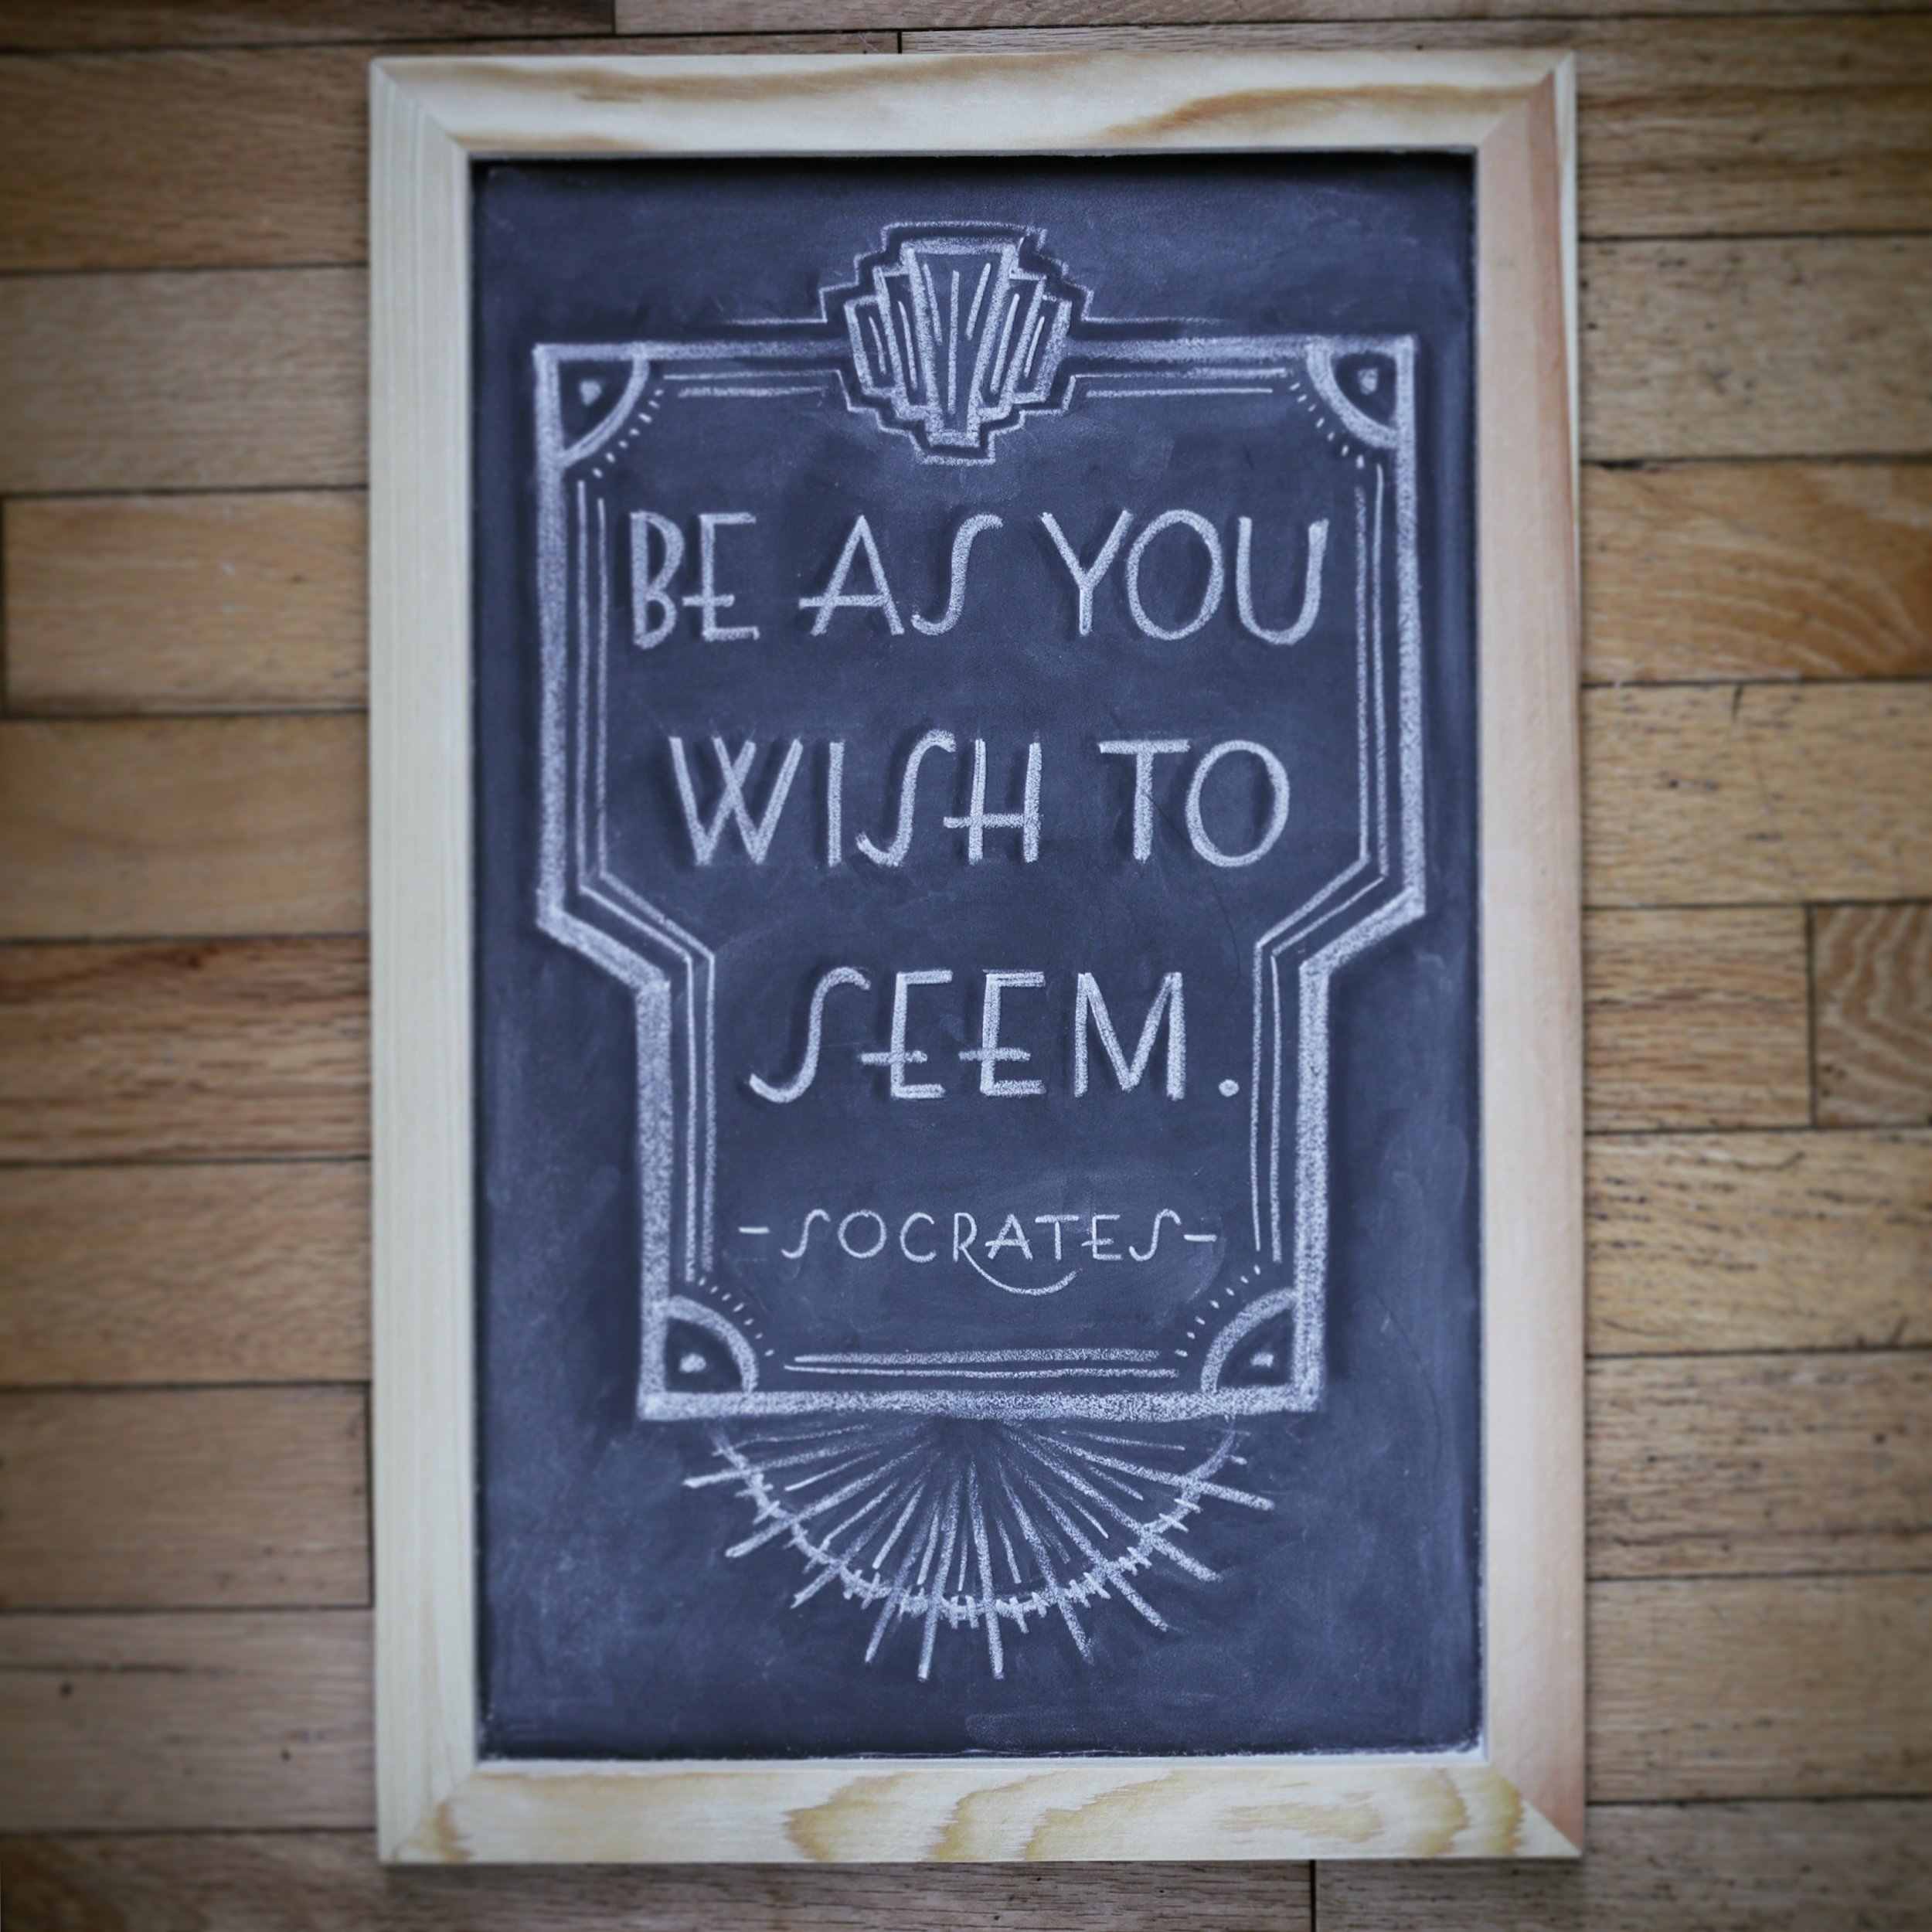 chalkboard-lettering-socrates-quote.jpeg